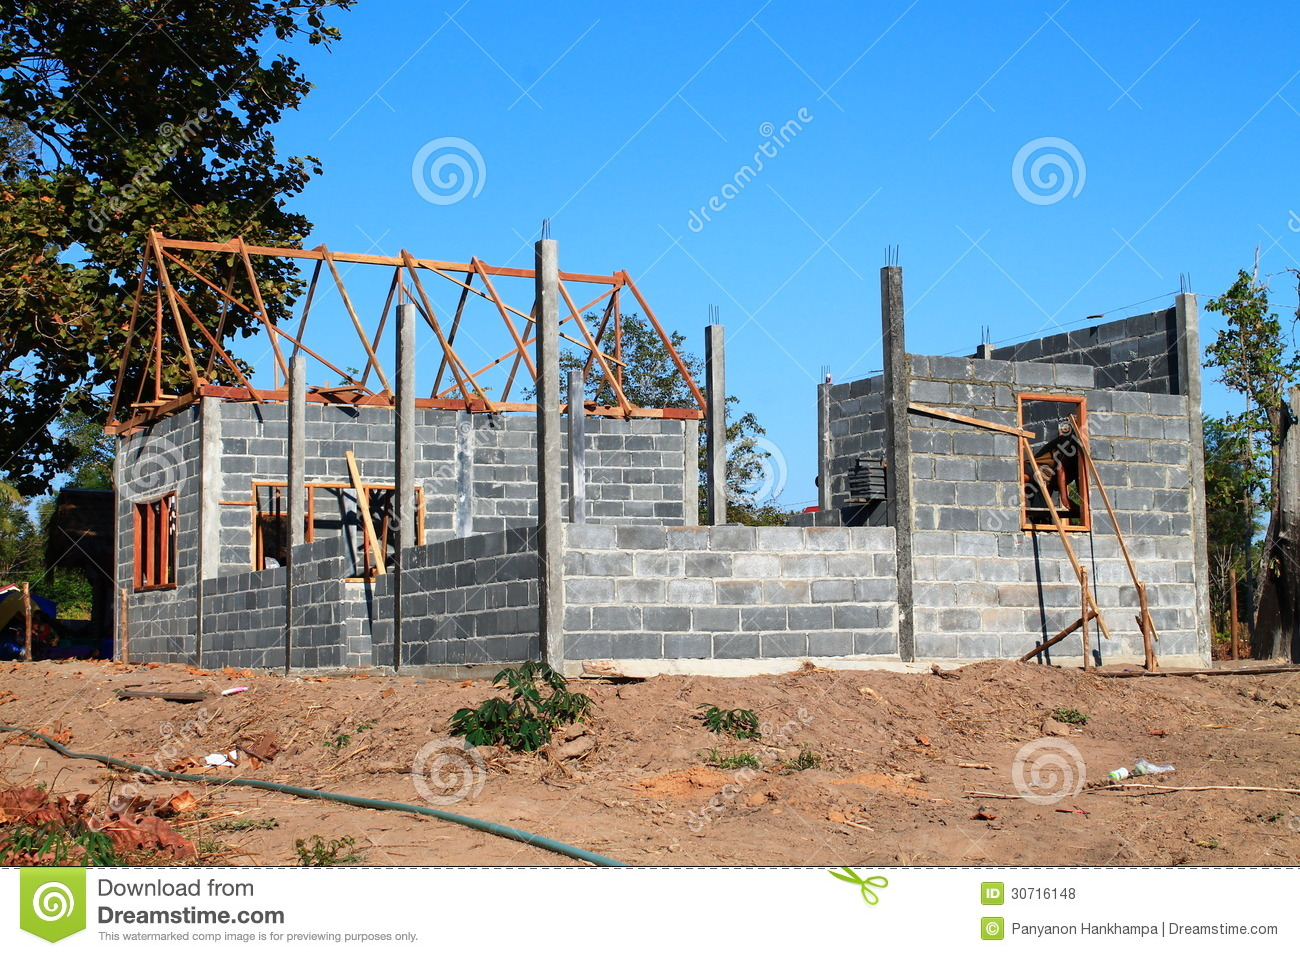 Your dream home new residential construction house Build your dream home online free